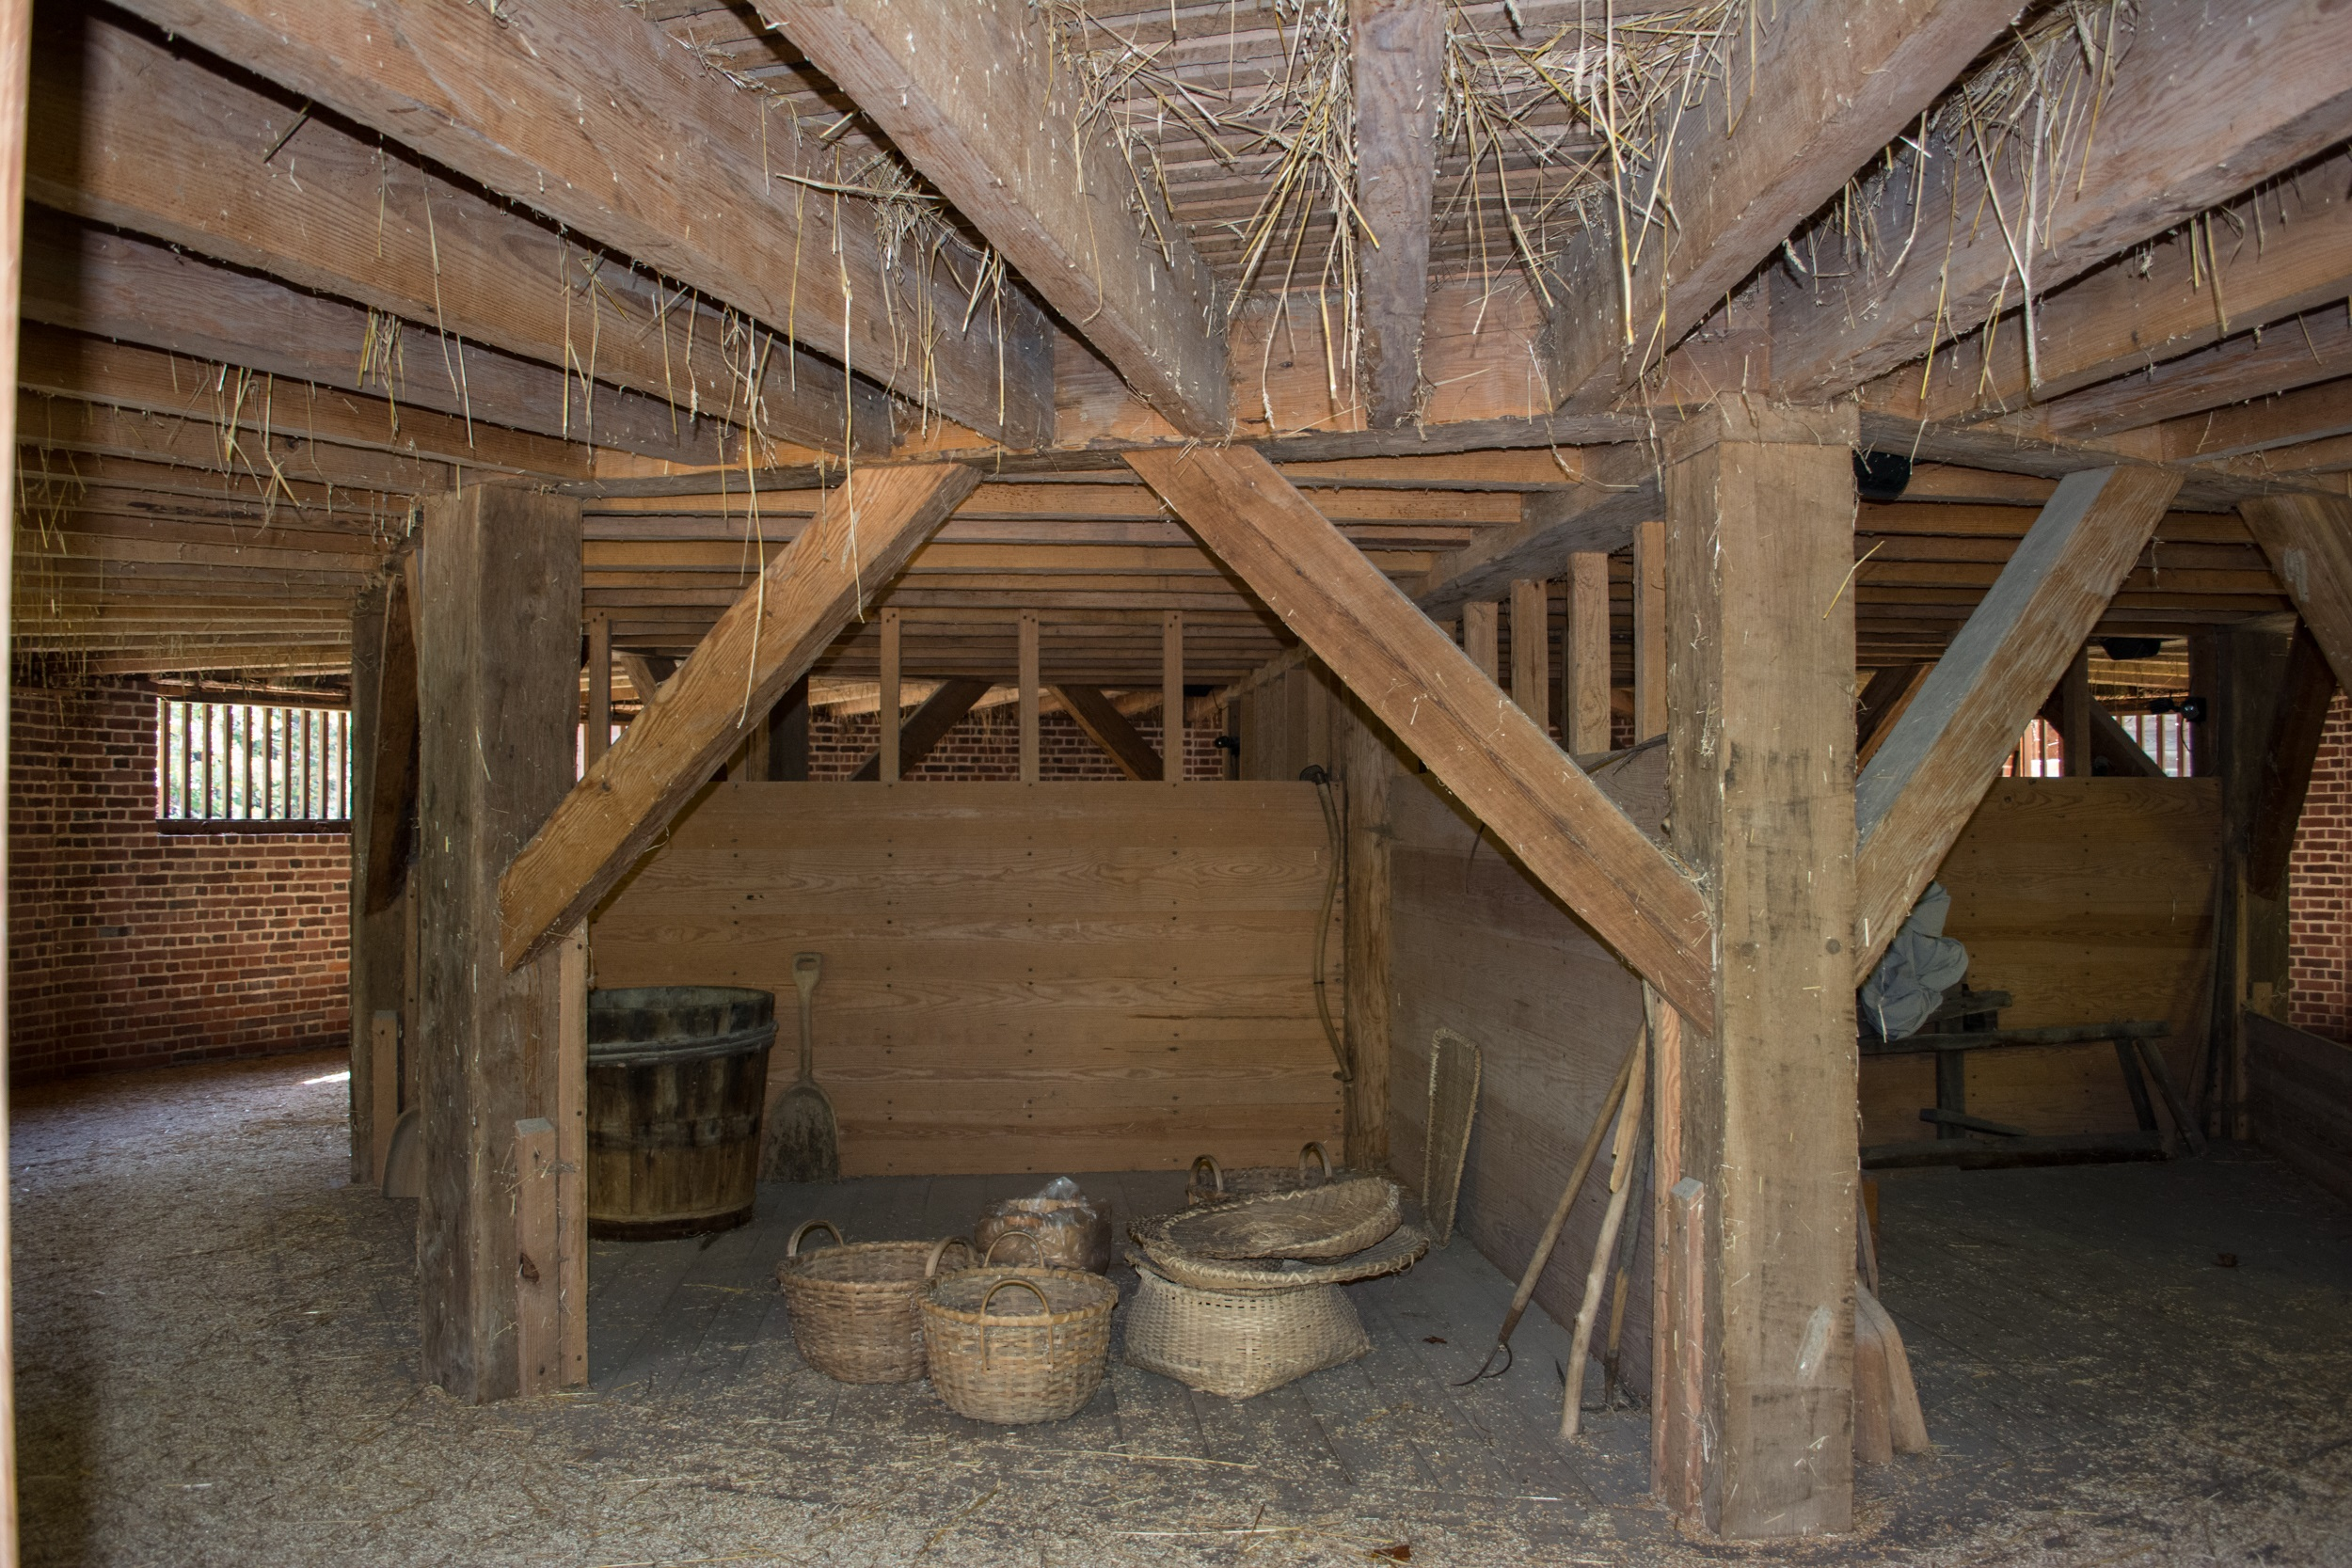 File:16 sided barn interior rear - Mount Vernon.jpg